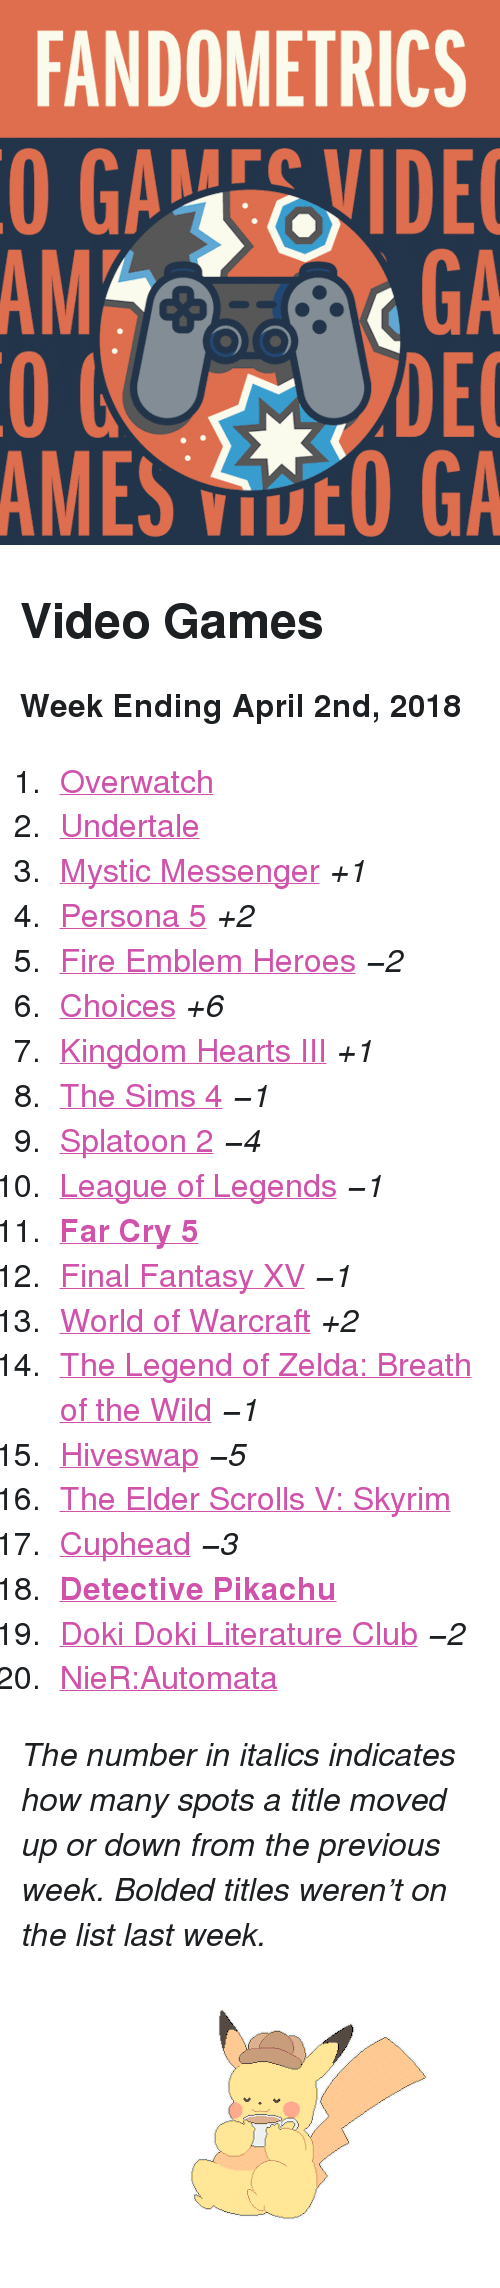 """The Legend Of Zelda Breath Of The Wild: FANDOMETRICS  GAEIDE  GA  DEC  MES DCO GA  AMGA <h2>Video Games</h2><p><b>Week Ending April 2nd, 2018</b></p><ol><li><a href=""""http://www.tumblr.com/search/overwatch"""">Overwatch</a></li>  <li><a href=""""http://www.tumblr.com/search/undertale"""">Undertale</a></li>  <li><a href=""""http://www.tumblr.com/search/mystic%20messenger"""">Mystic Messenger</a><i>+1</i></li>  <li><a href=""""http://www.tumblr.com/search/persona%205"""">Persona 5</a><i>+2</i></li>  <li><a href=""""http://www.tumblr.com/search/fire%20emblem%20heroes"""">Fire Emblem Heroes</a><i><i>−2</i></i></li>  <li><a href=""""http://www.tumblr.com/search/playchoices"""">Choices</a><i>+6</i></li>  <li><a href=""""http://www.tumblr.com/search/kingdom%20hearts"""">Kingdom Hearts III</a><i>+1</i></li>  <li><a href=""""http://www.tumblr.com/search/sims%204"""">The Sims 4</a><i><i>−1</i></i></li>  <li><a href=""""http://www.tumblr.com/search/splatoon"""">Splatoon 2</a><i><i>−4</i></i></li>  <li><a href=""""http://www.tumblr.com/search/league%20of%20legends"""">League of Legends</a><i><i>−1</i></i></li>  <li><a href=""""http://www.tumblr.com/search/far%20cry%205""""><b>Far Cry 5</b></a></li>  <li><a href=""""http://www.tumblr.com/search/final%20fantasy%20xv"""">Final Fantasy XV</a><i><i>−1</i></i></li>  <li><a href=""""http://www.tumblr.com/search/world%20of%20warcraft"""">World of Warcraft</a><i>+2</i></li>  <li><a href=""""http://www.tumblr.com/search/breath%20of%20the%20wild"""">The Legend of Zelda: Breath of the Wild</a><i><i>−1</i></i></li>  <li><a href=""""http://www.tumblr.com/search/hiveswap"""">Hiveswap</a><i><i>−5</i></i></li>  <li><a href=""""http://www.tumblr.com/search/skyrim"""">The Elder Scrolls V: Skyrim</a></li>  <li><a href=""""http://www.tumblr.com/search/cuphead"""">Cuphead</a><i><i>−3</i></i></li>  <li><a href=""""http://www.tumblr.com/search/detective%20pikachu""""><b>Detective Pikachu</b></a></li>  <li><a href=""""http://www.tumblr.com/search/doki%20doki%20literature%20club"""">Doki Doki Literature Club</a><i><i>−2</i></i></li>  <li><a href=""""http://www.tumbl"""